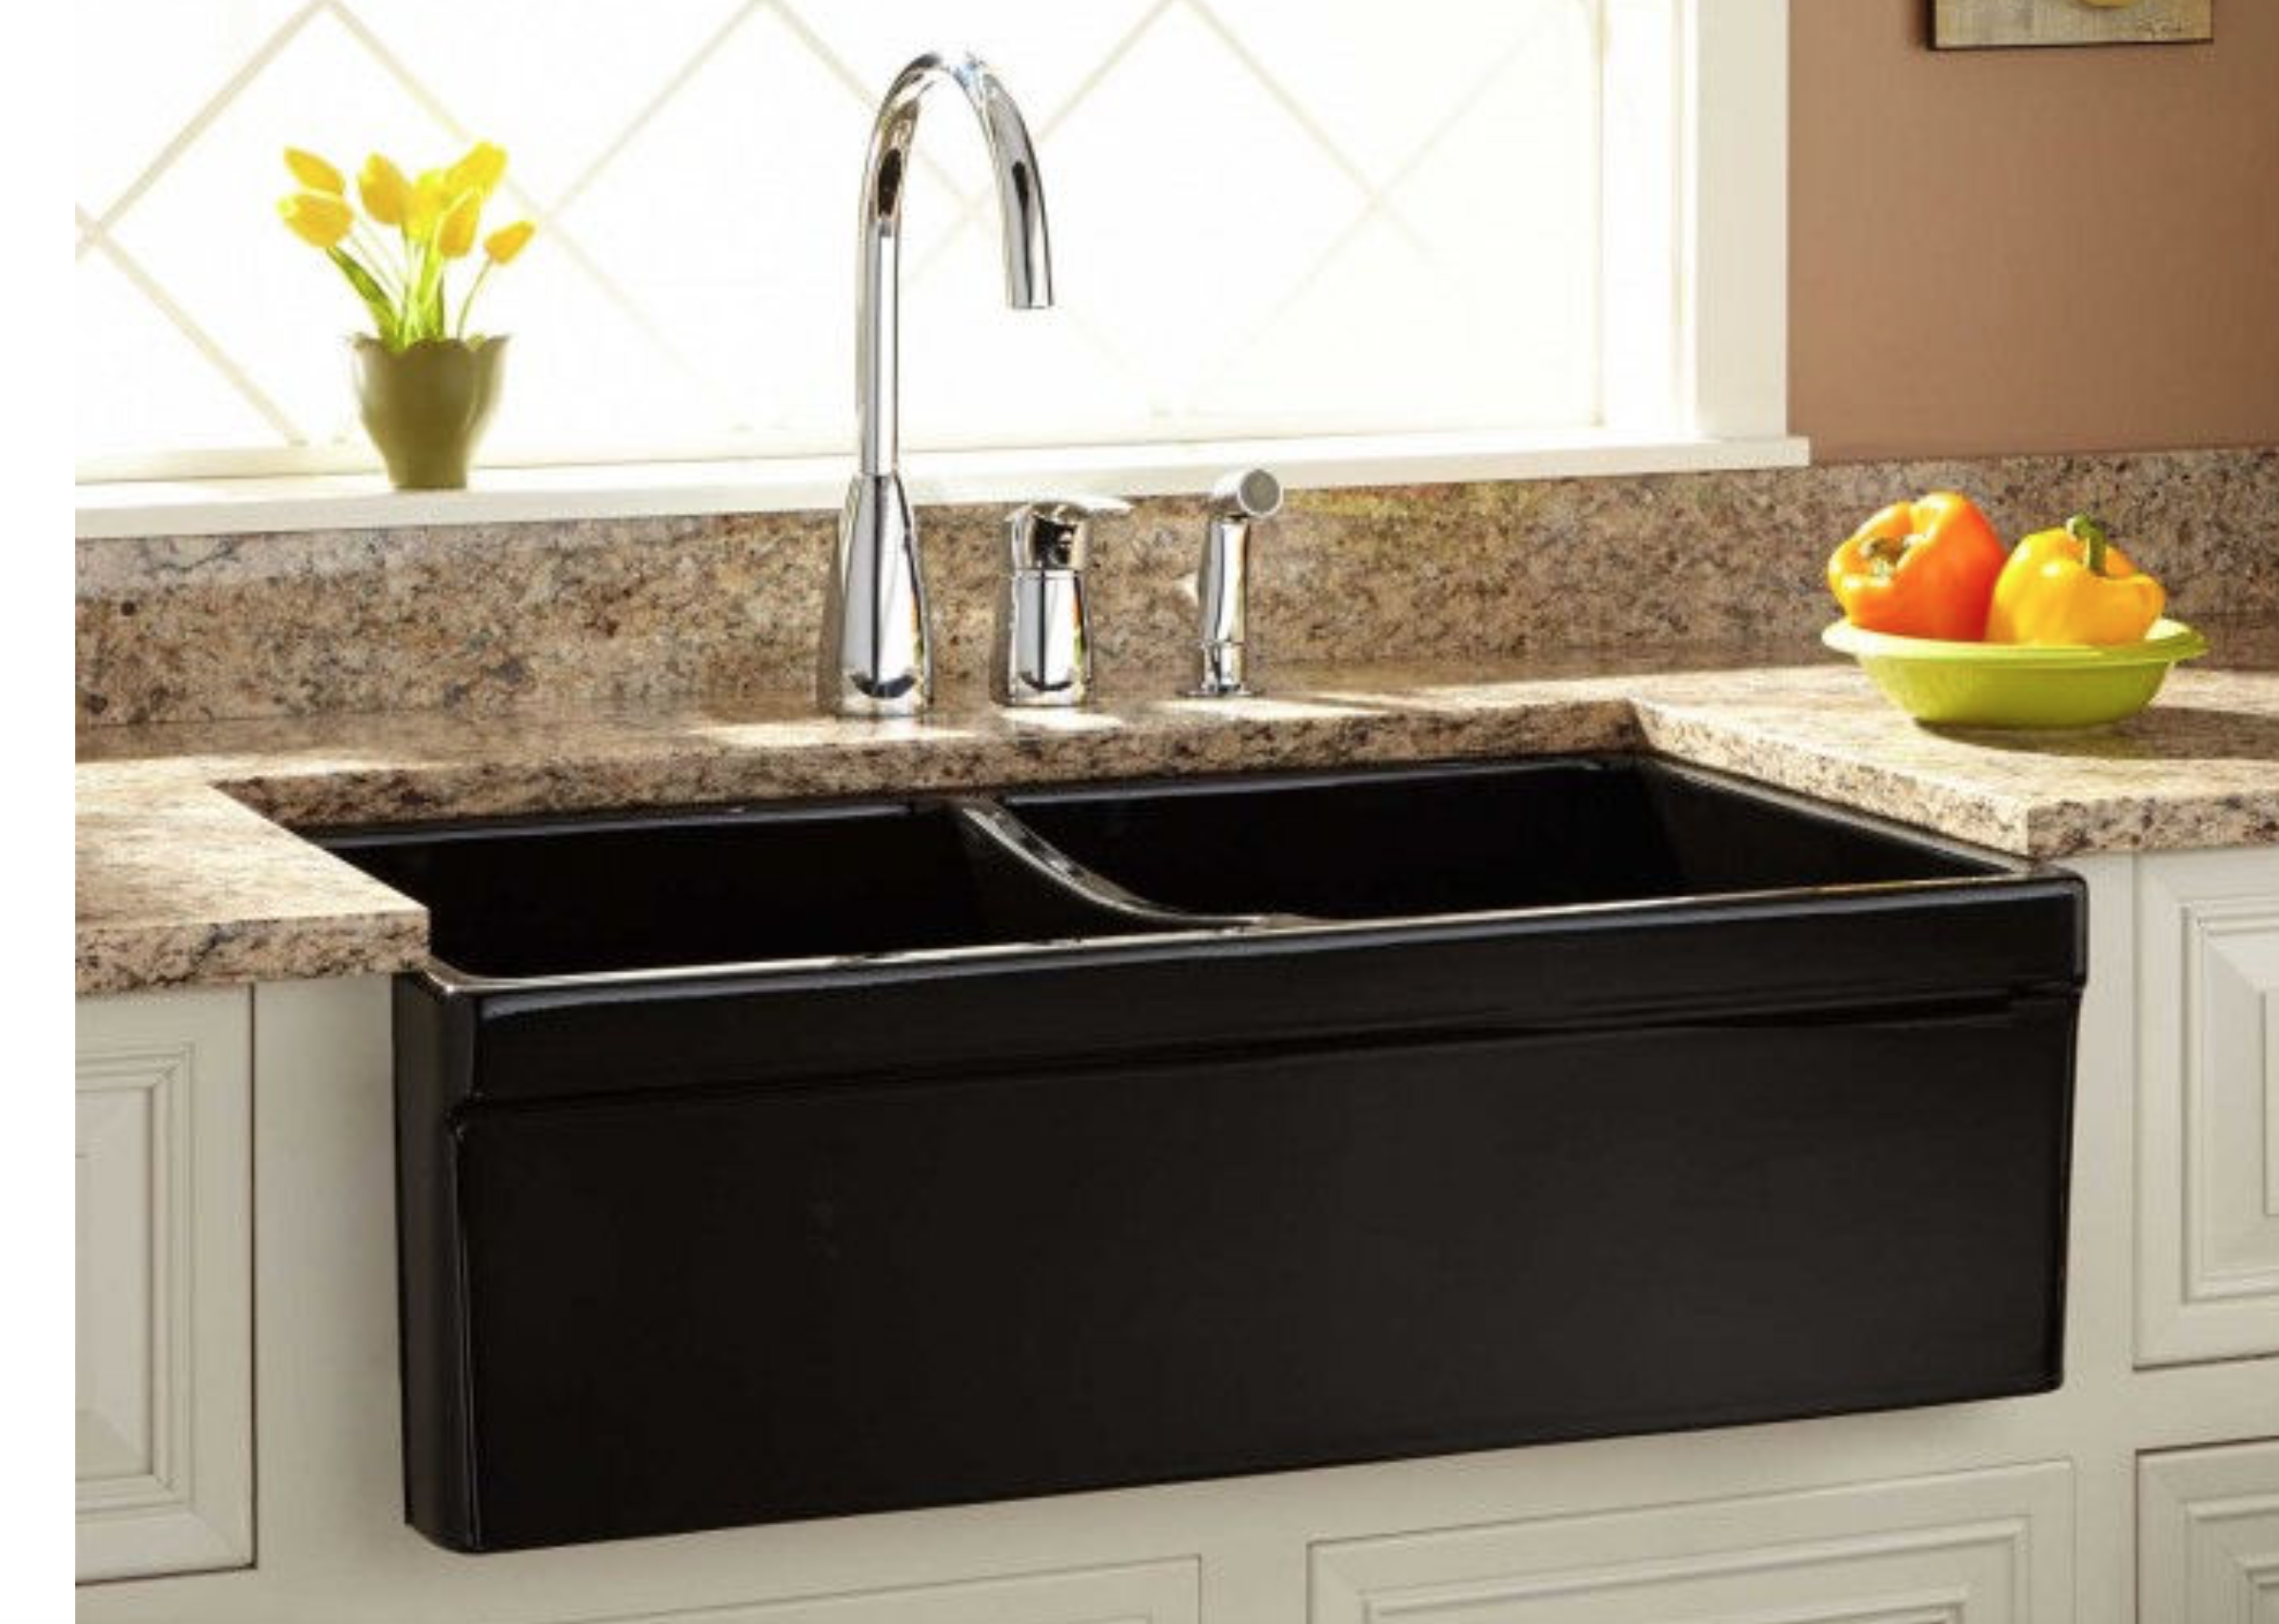 Heather Wants To Do A Composite Sink That Is Black U0026 Apron Front Bigger  Than 33